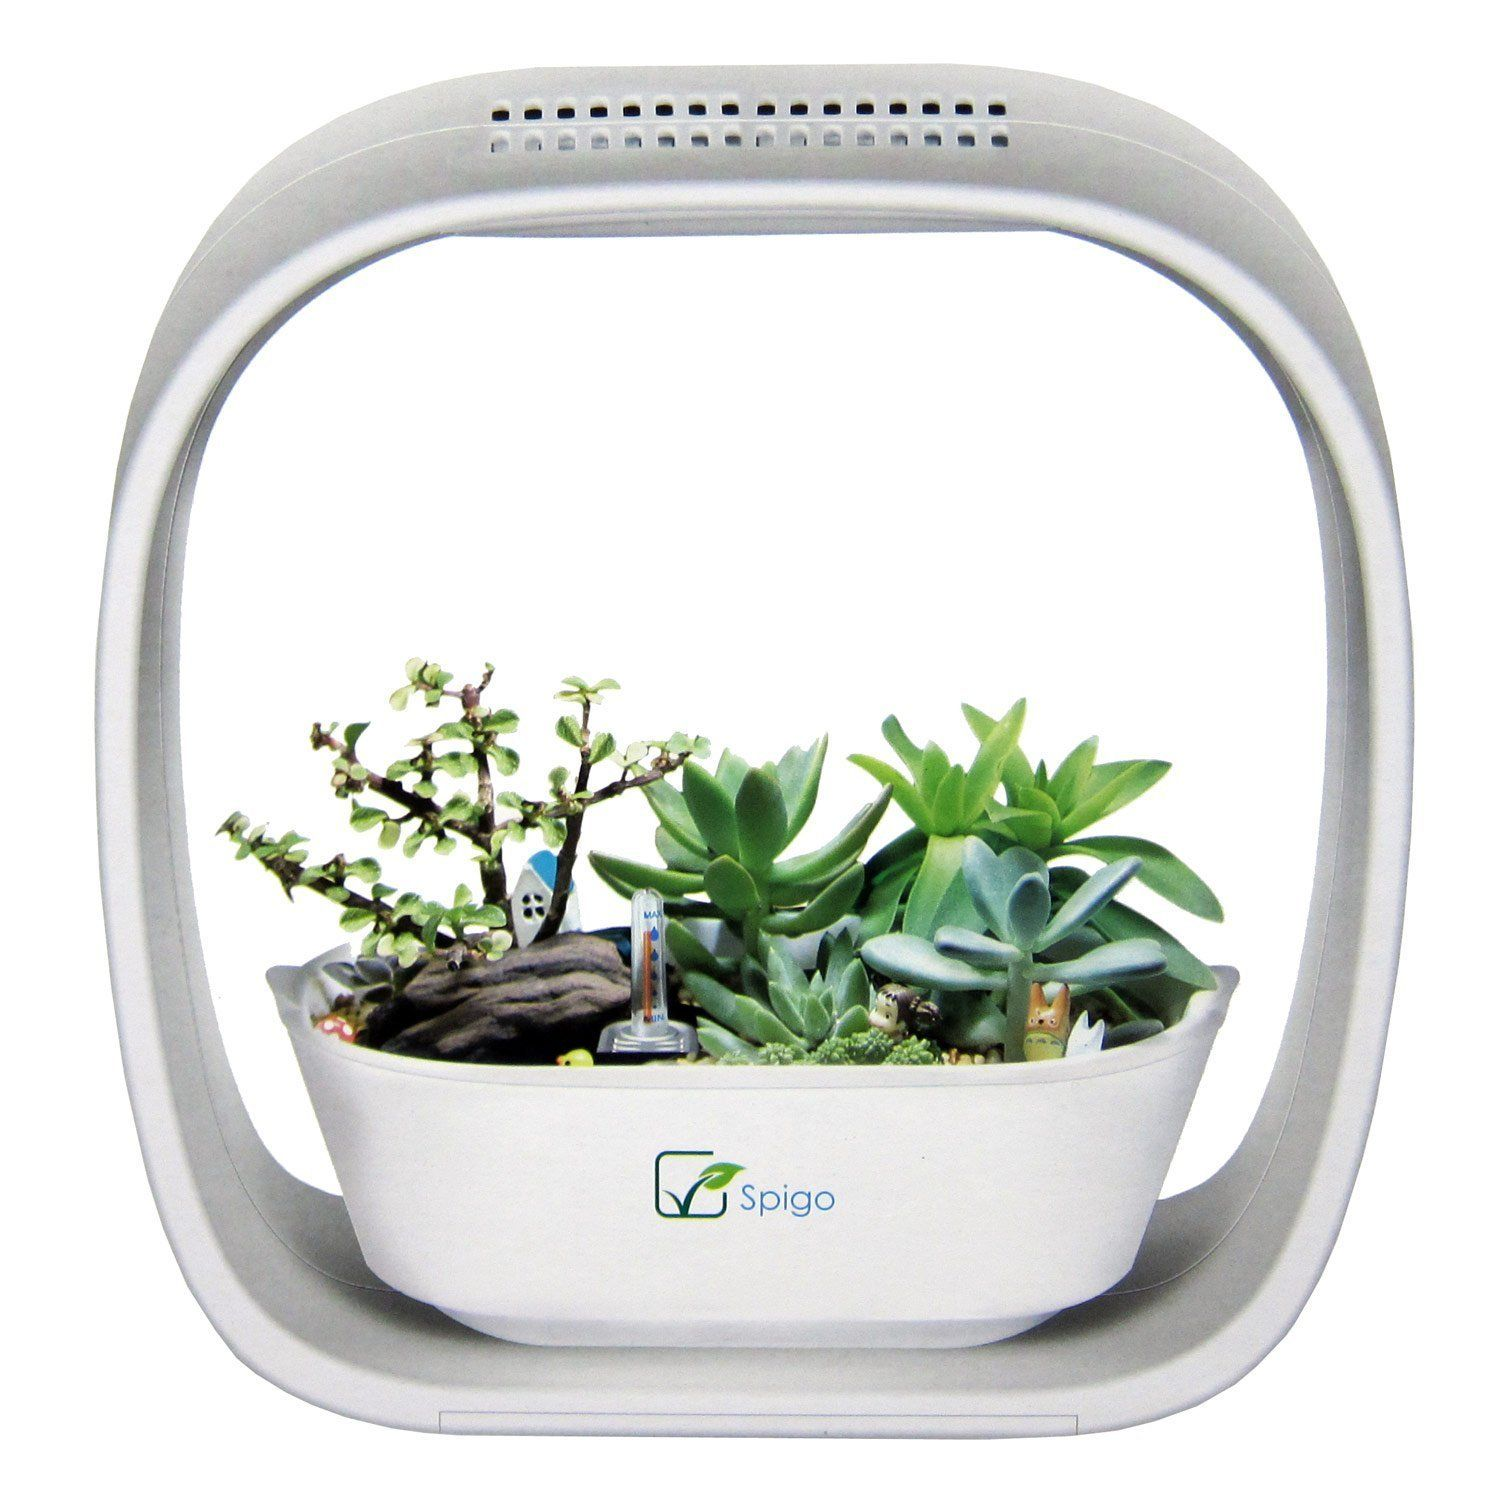 grow incredible herbs and plants in this gorgeous led light garden spigo indoor led light grow. Black Bedroom Furniture Sets. Home Design Ideas